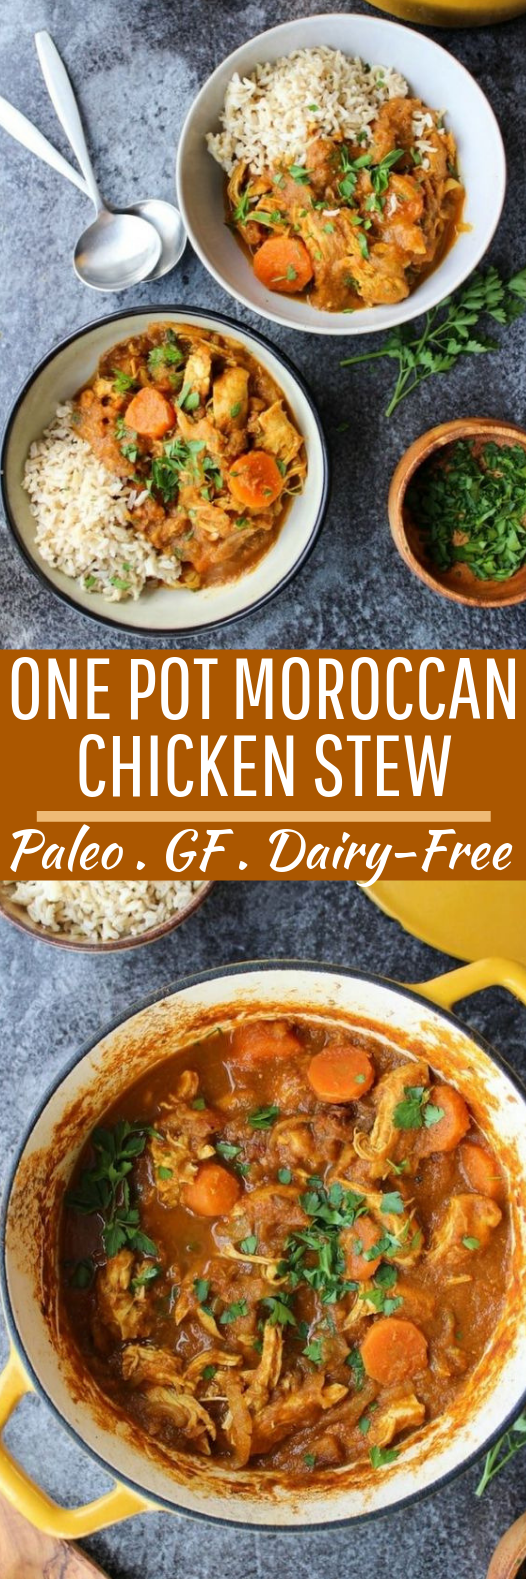 One Pot Moroccan Chicken Stew #healthy #paleo